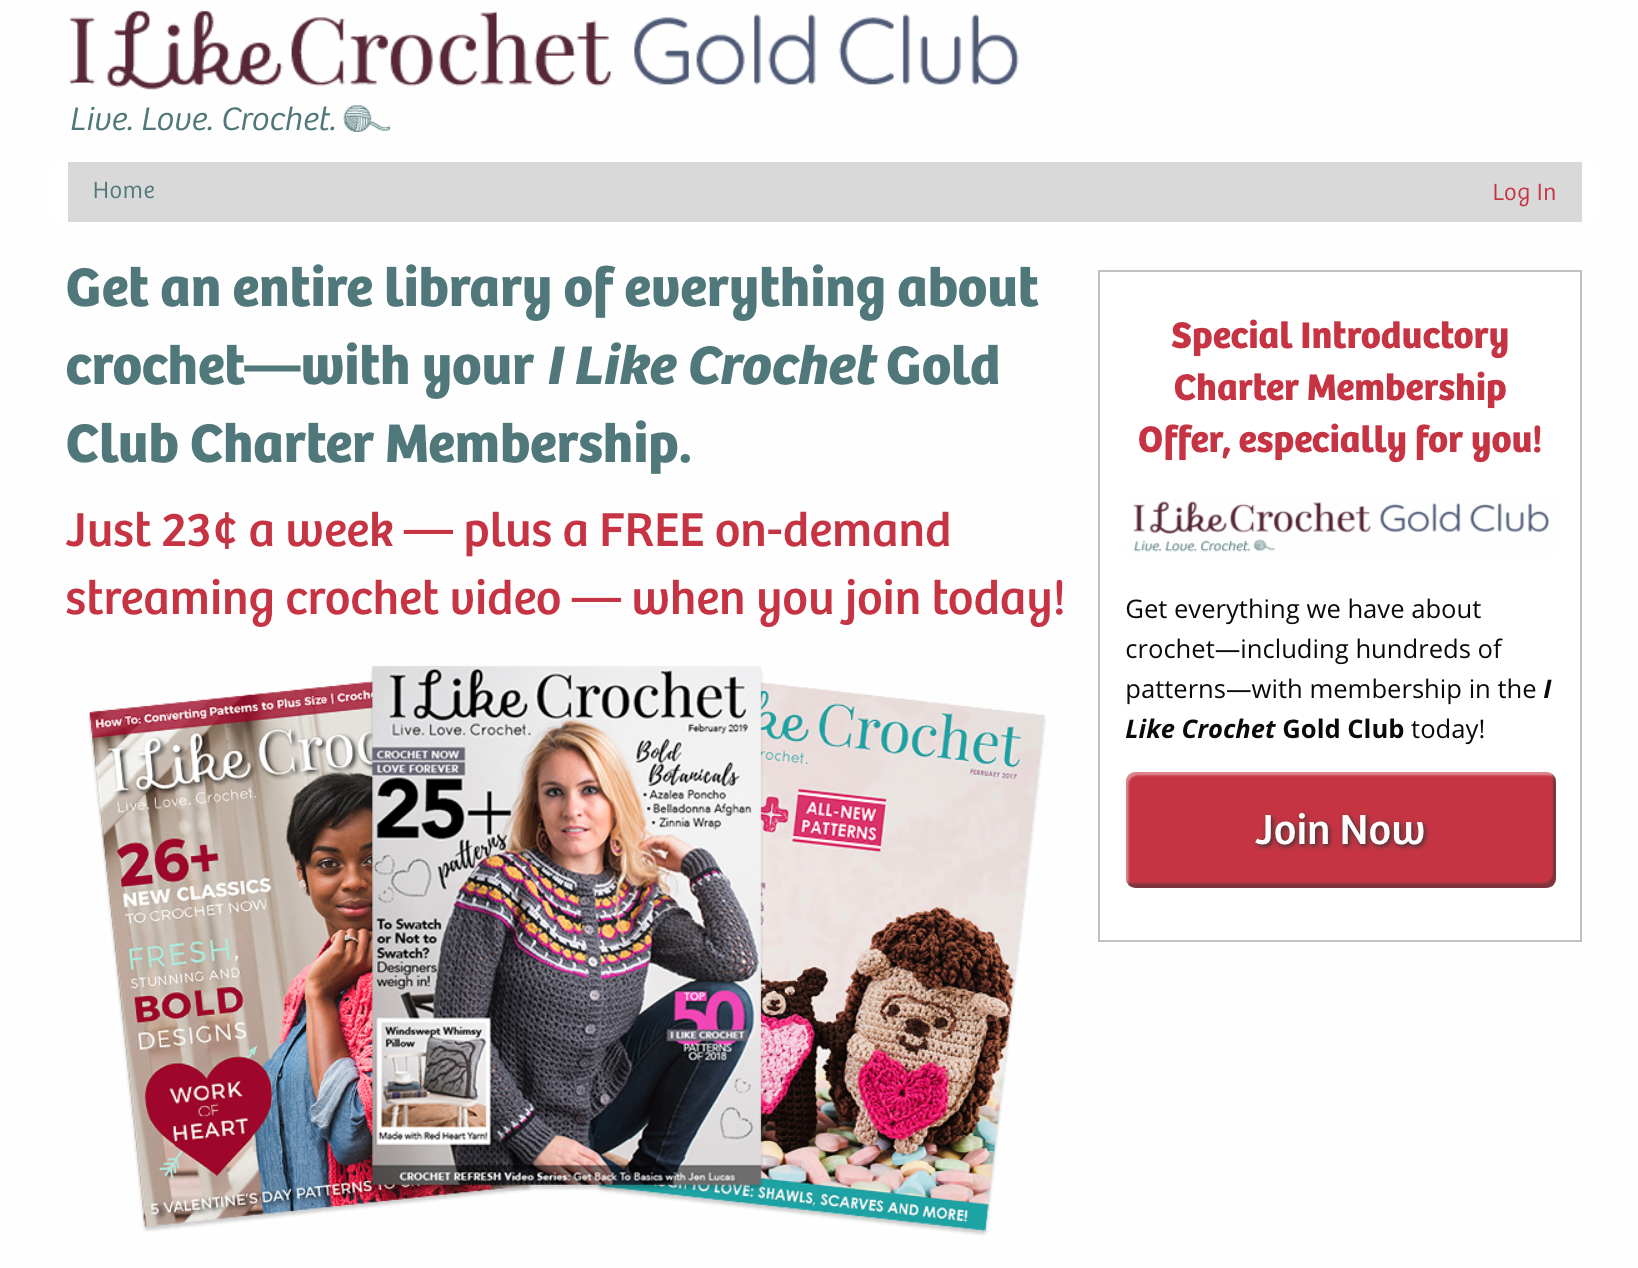 Digital Milestone: I Like Crochet Hits 15,000 Members